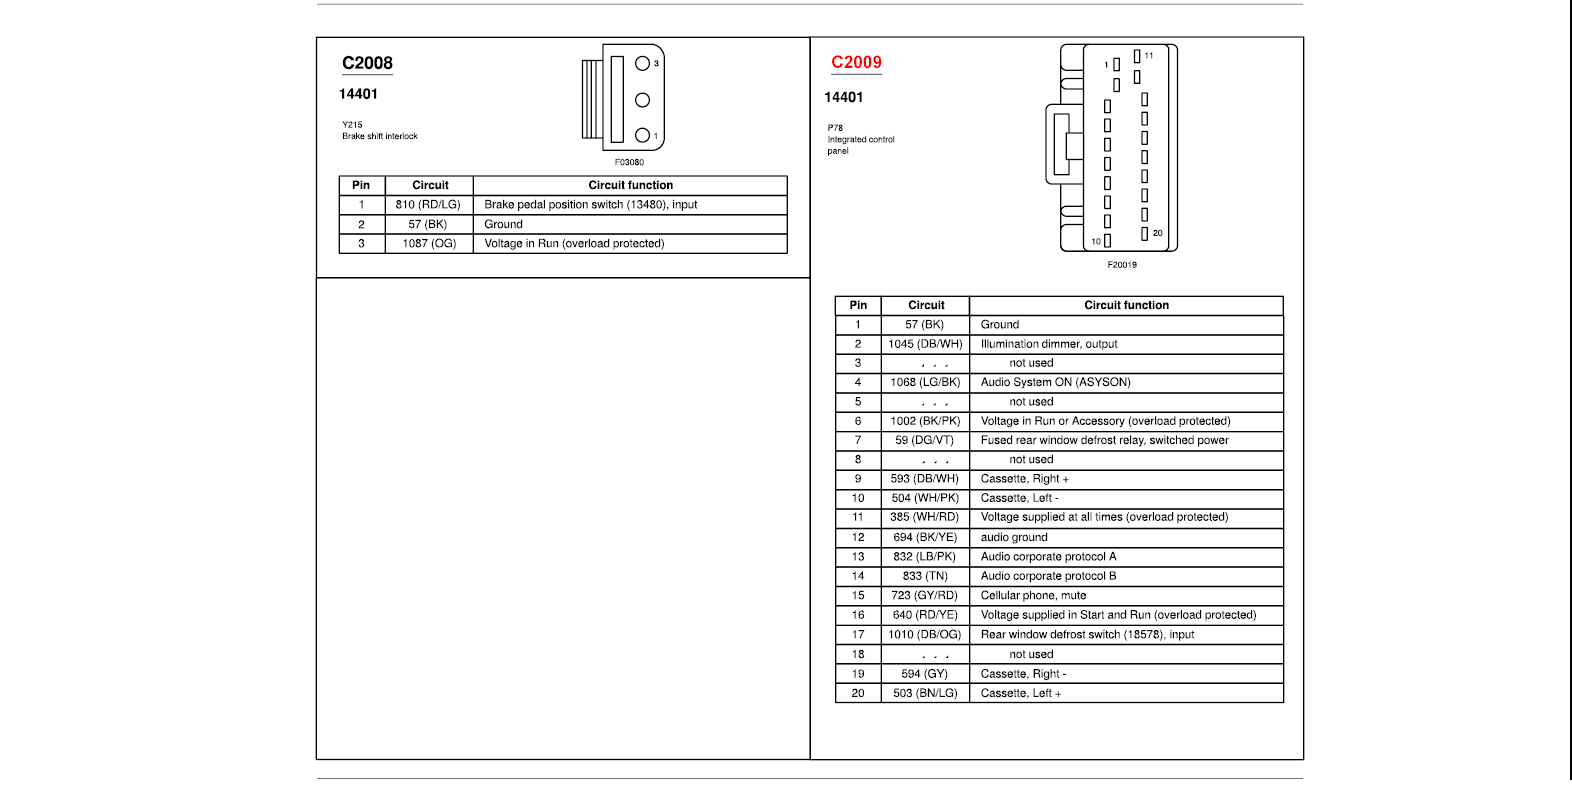 2010 12 20_023636_02_sable 2007 ford five hundred car stereo wiring diagram radiobuzz48 1999 Mercury Sable Repair Manual at alyssarenee.co